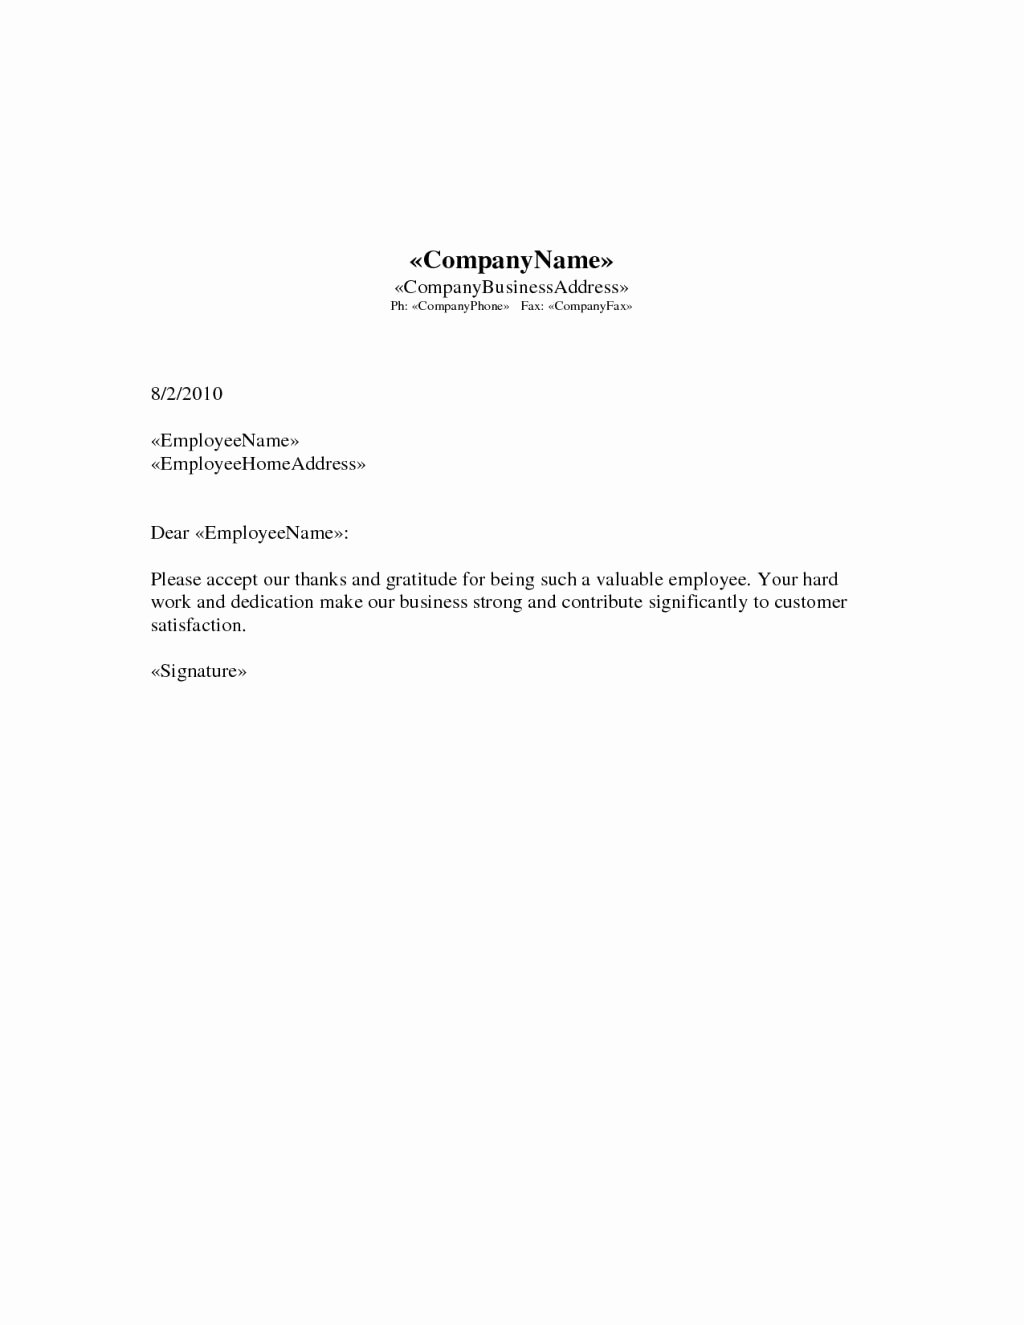 Dandy Employee Recognition Letter Sample – Letter format